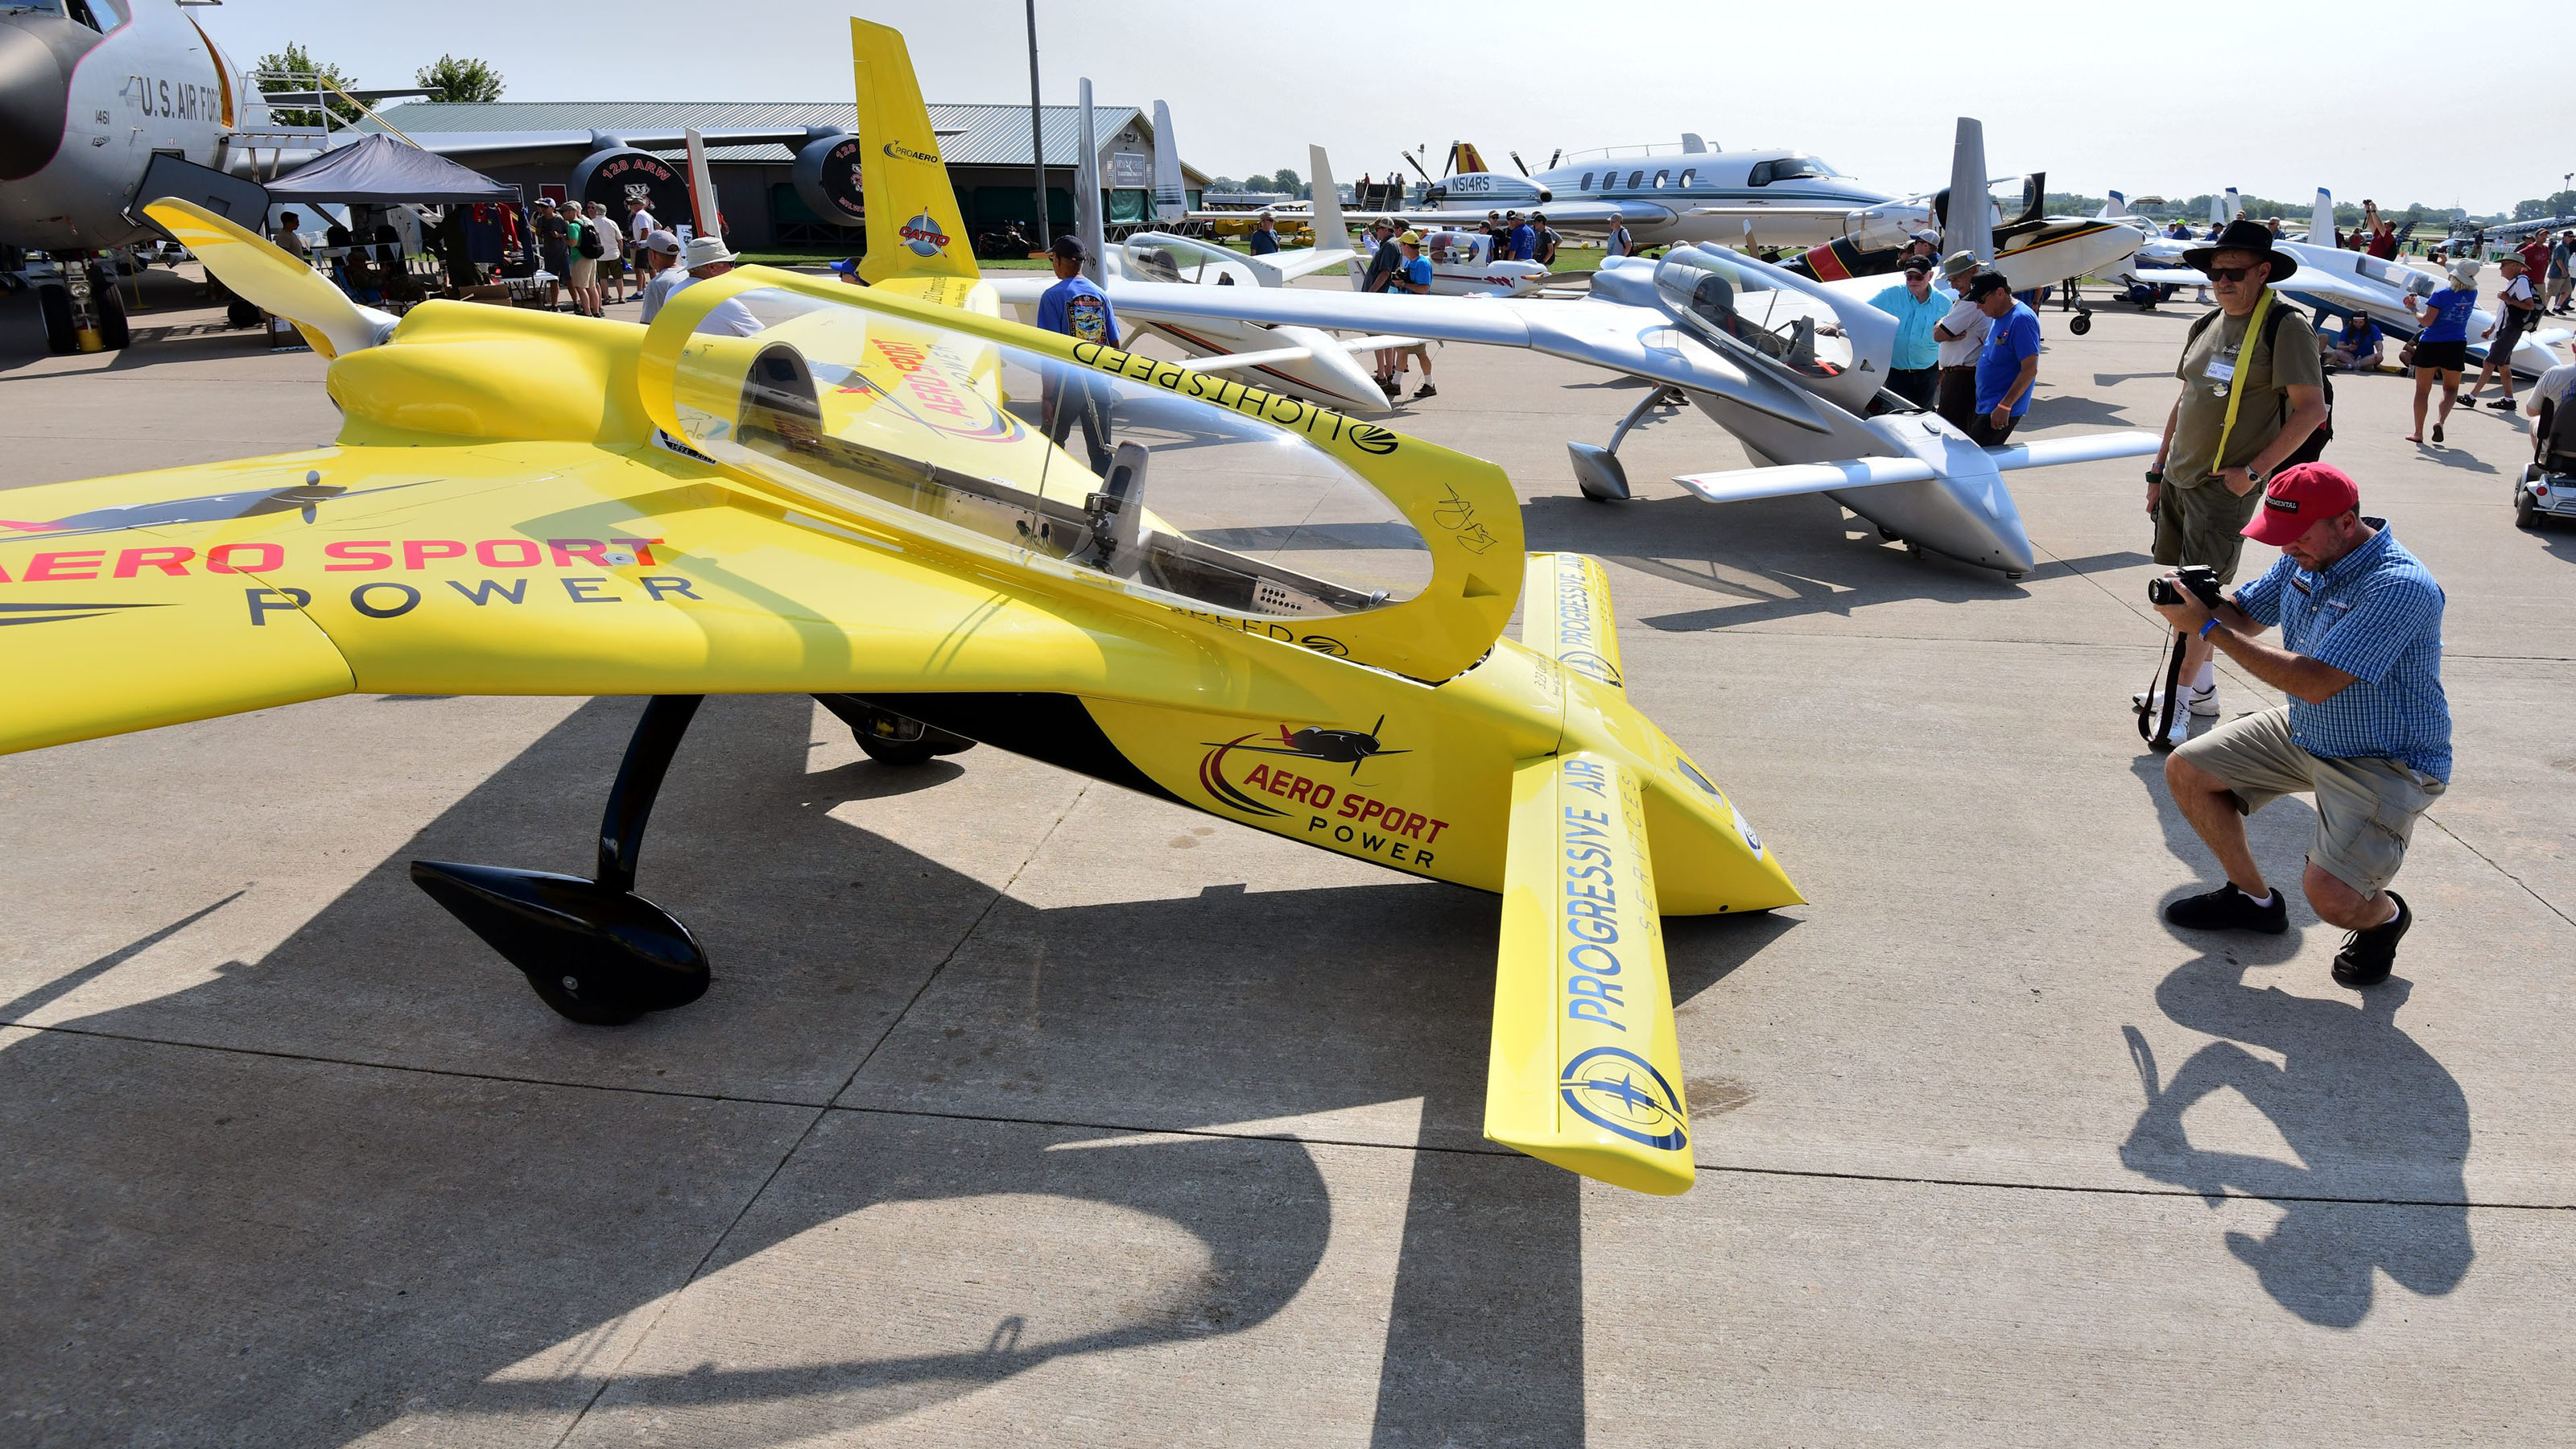 A number of aircraft conceived by legendary aircraft designer Burt Rutan are on display at Boeing Plaza. Rutan and his designs are being celebrated at EAA AirVenture 2019. Photo by Mike Collins.